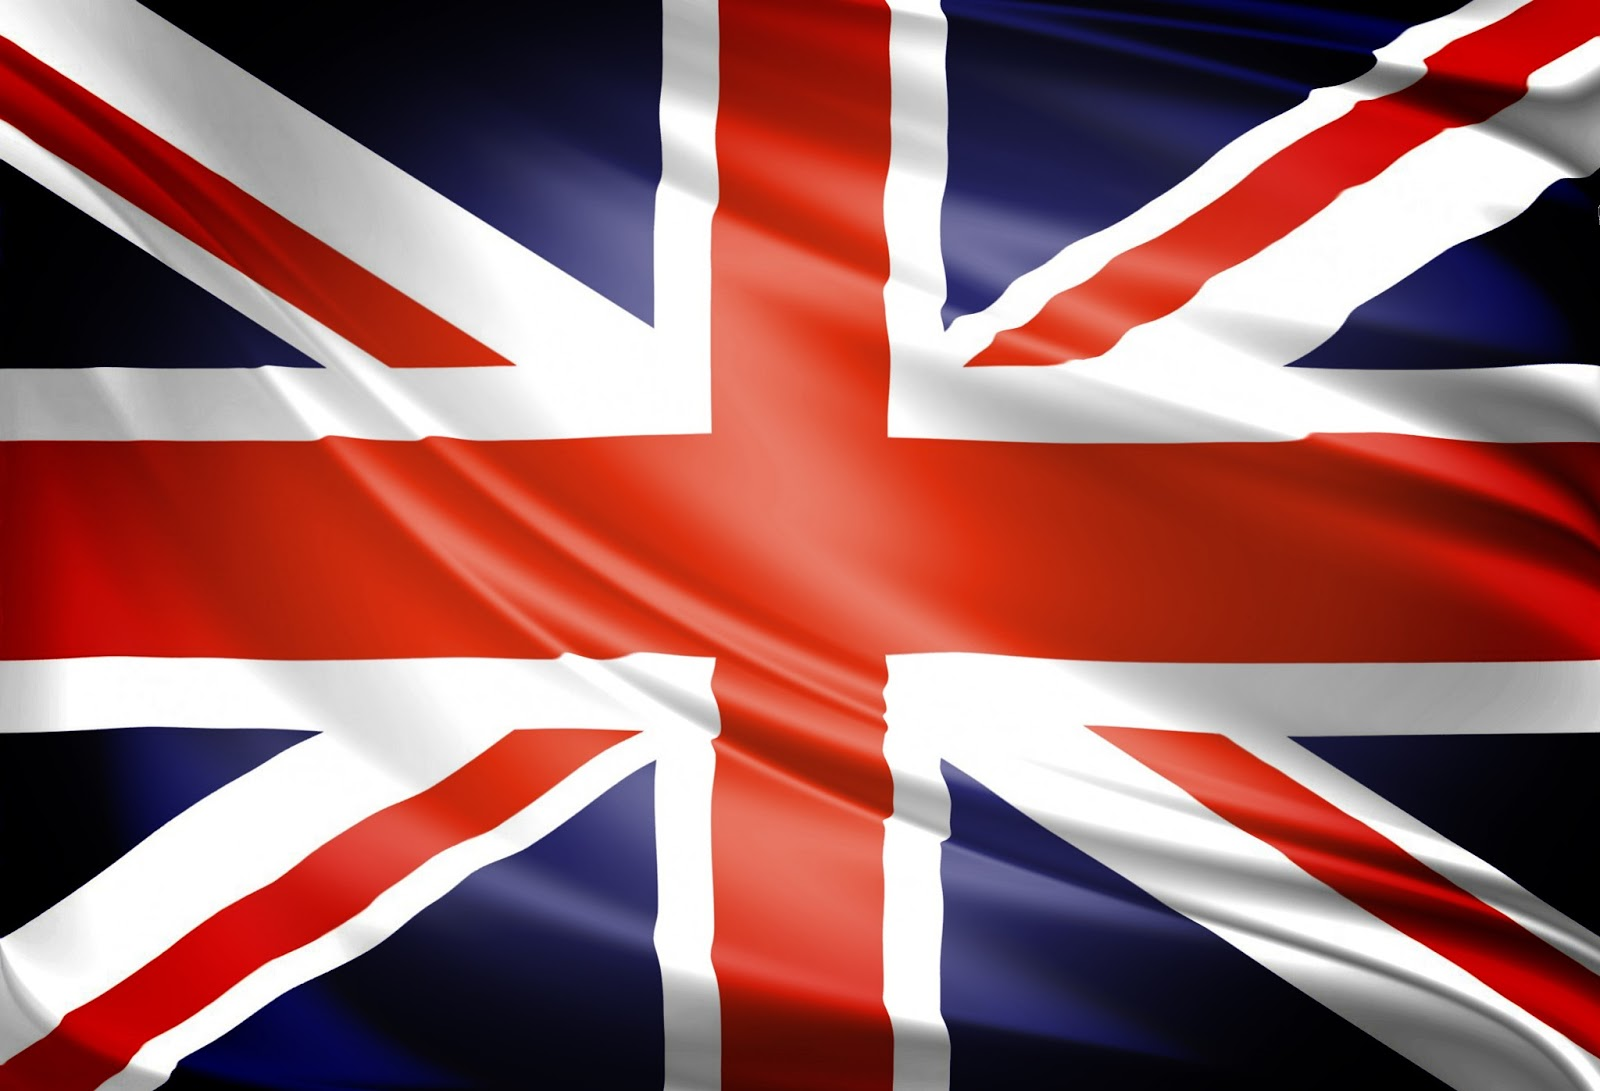 britain flag HQ wallpapers download 1600x1091